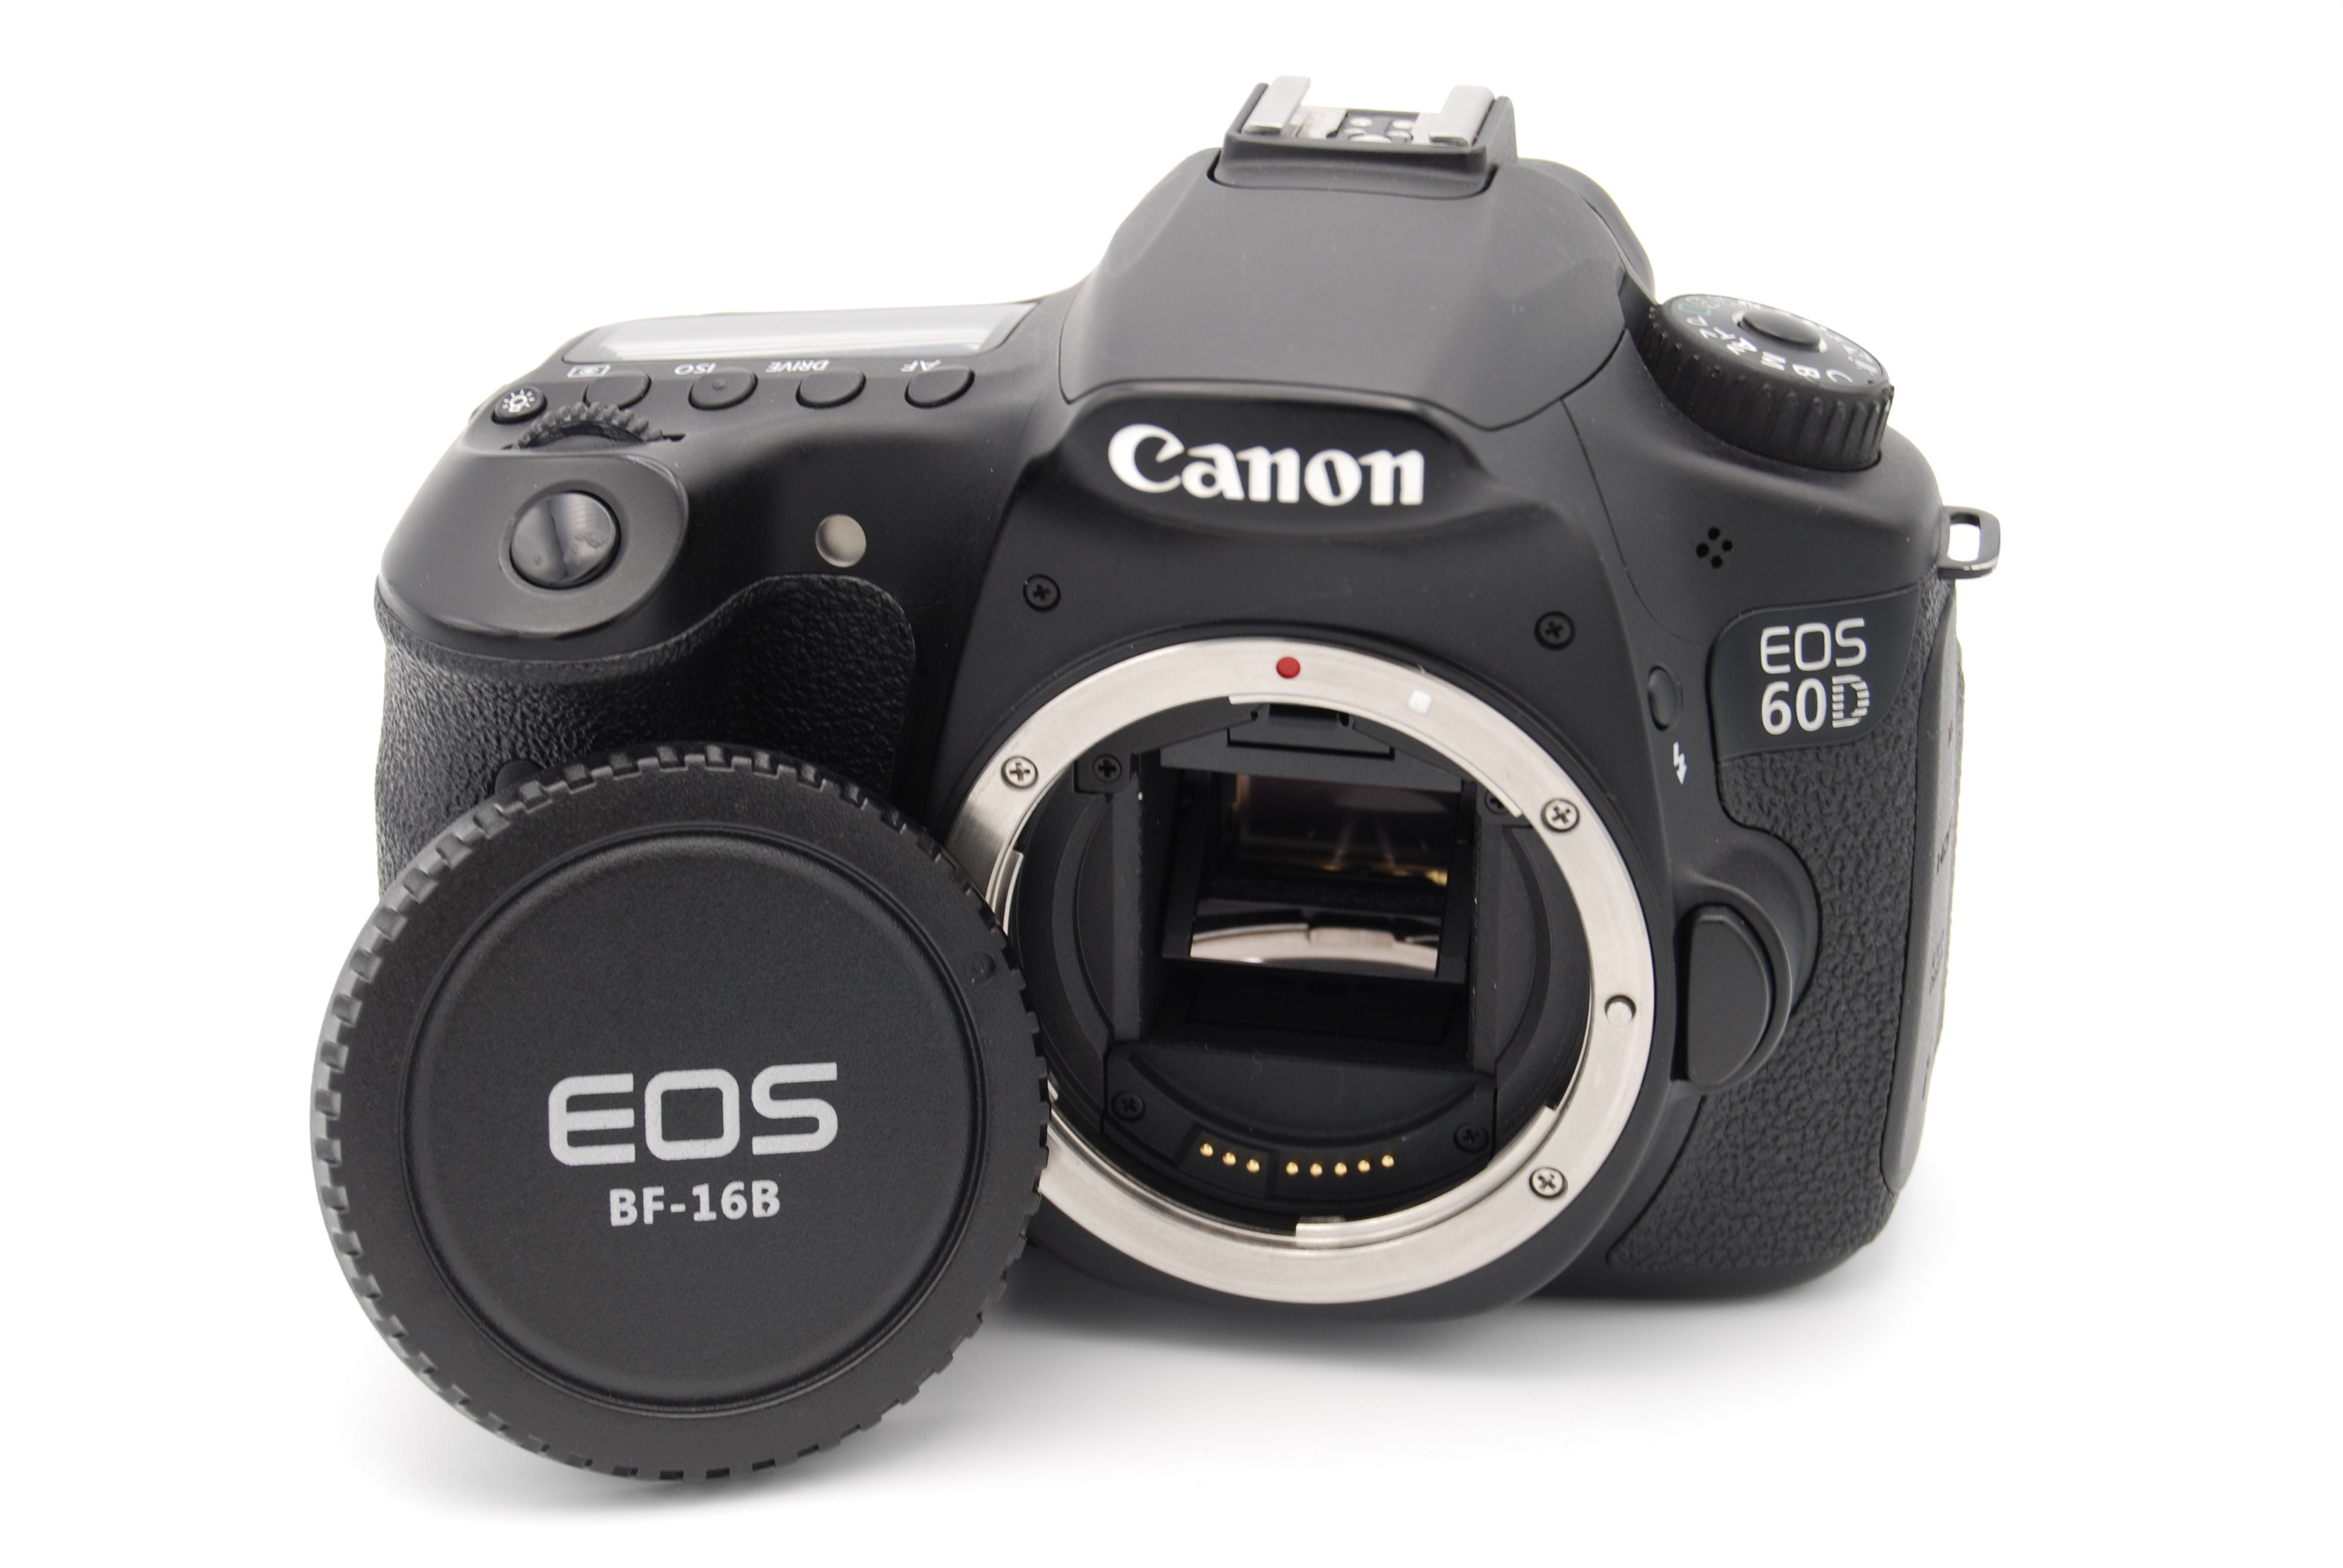 Canon eos 60d 18 0 mp digital slr camera black body only